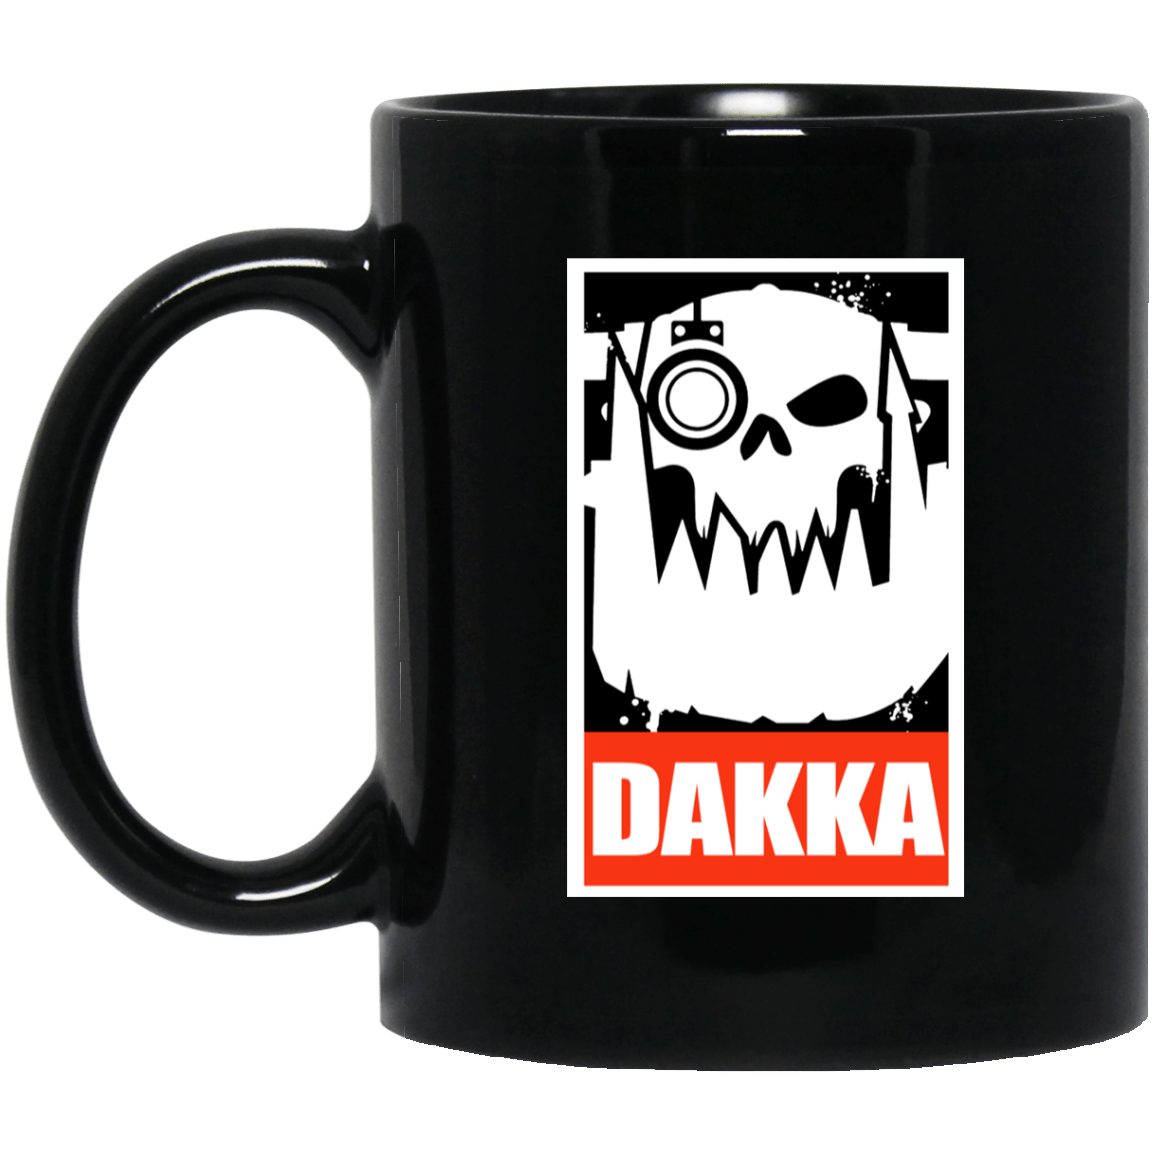 Orks Dakka Tabletop Wargaming And Miniatures Addict Mug 1065-10181-88767858-49307 - Tee Ript